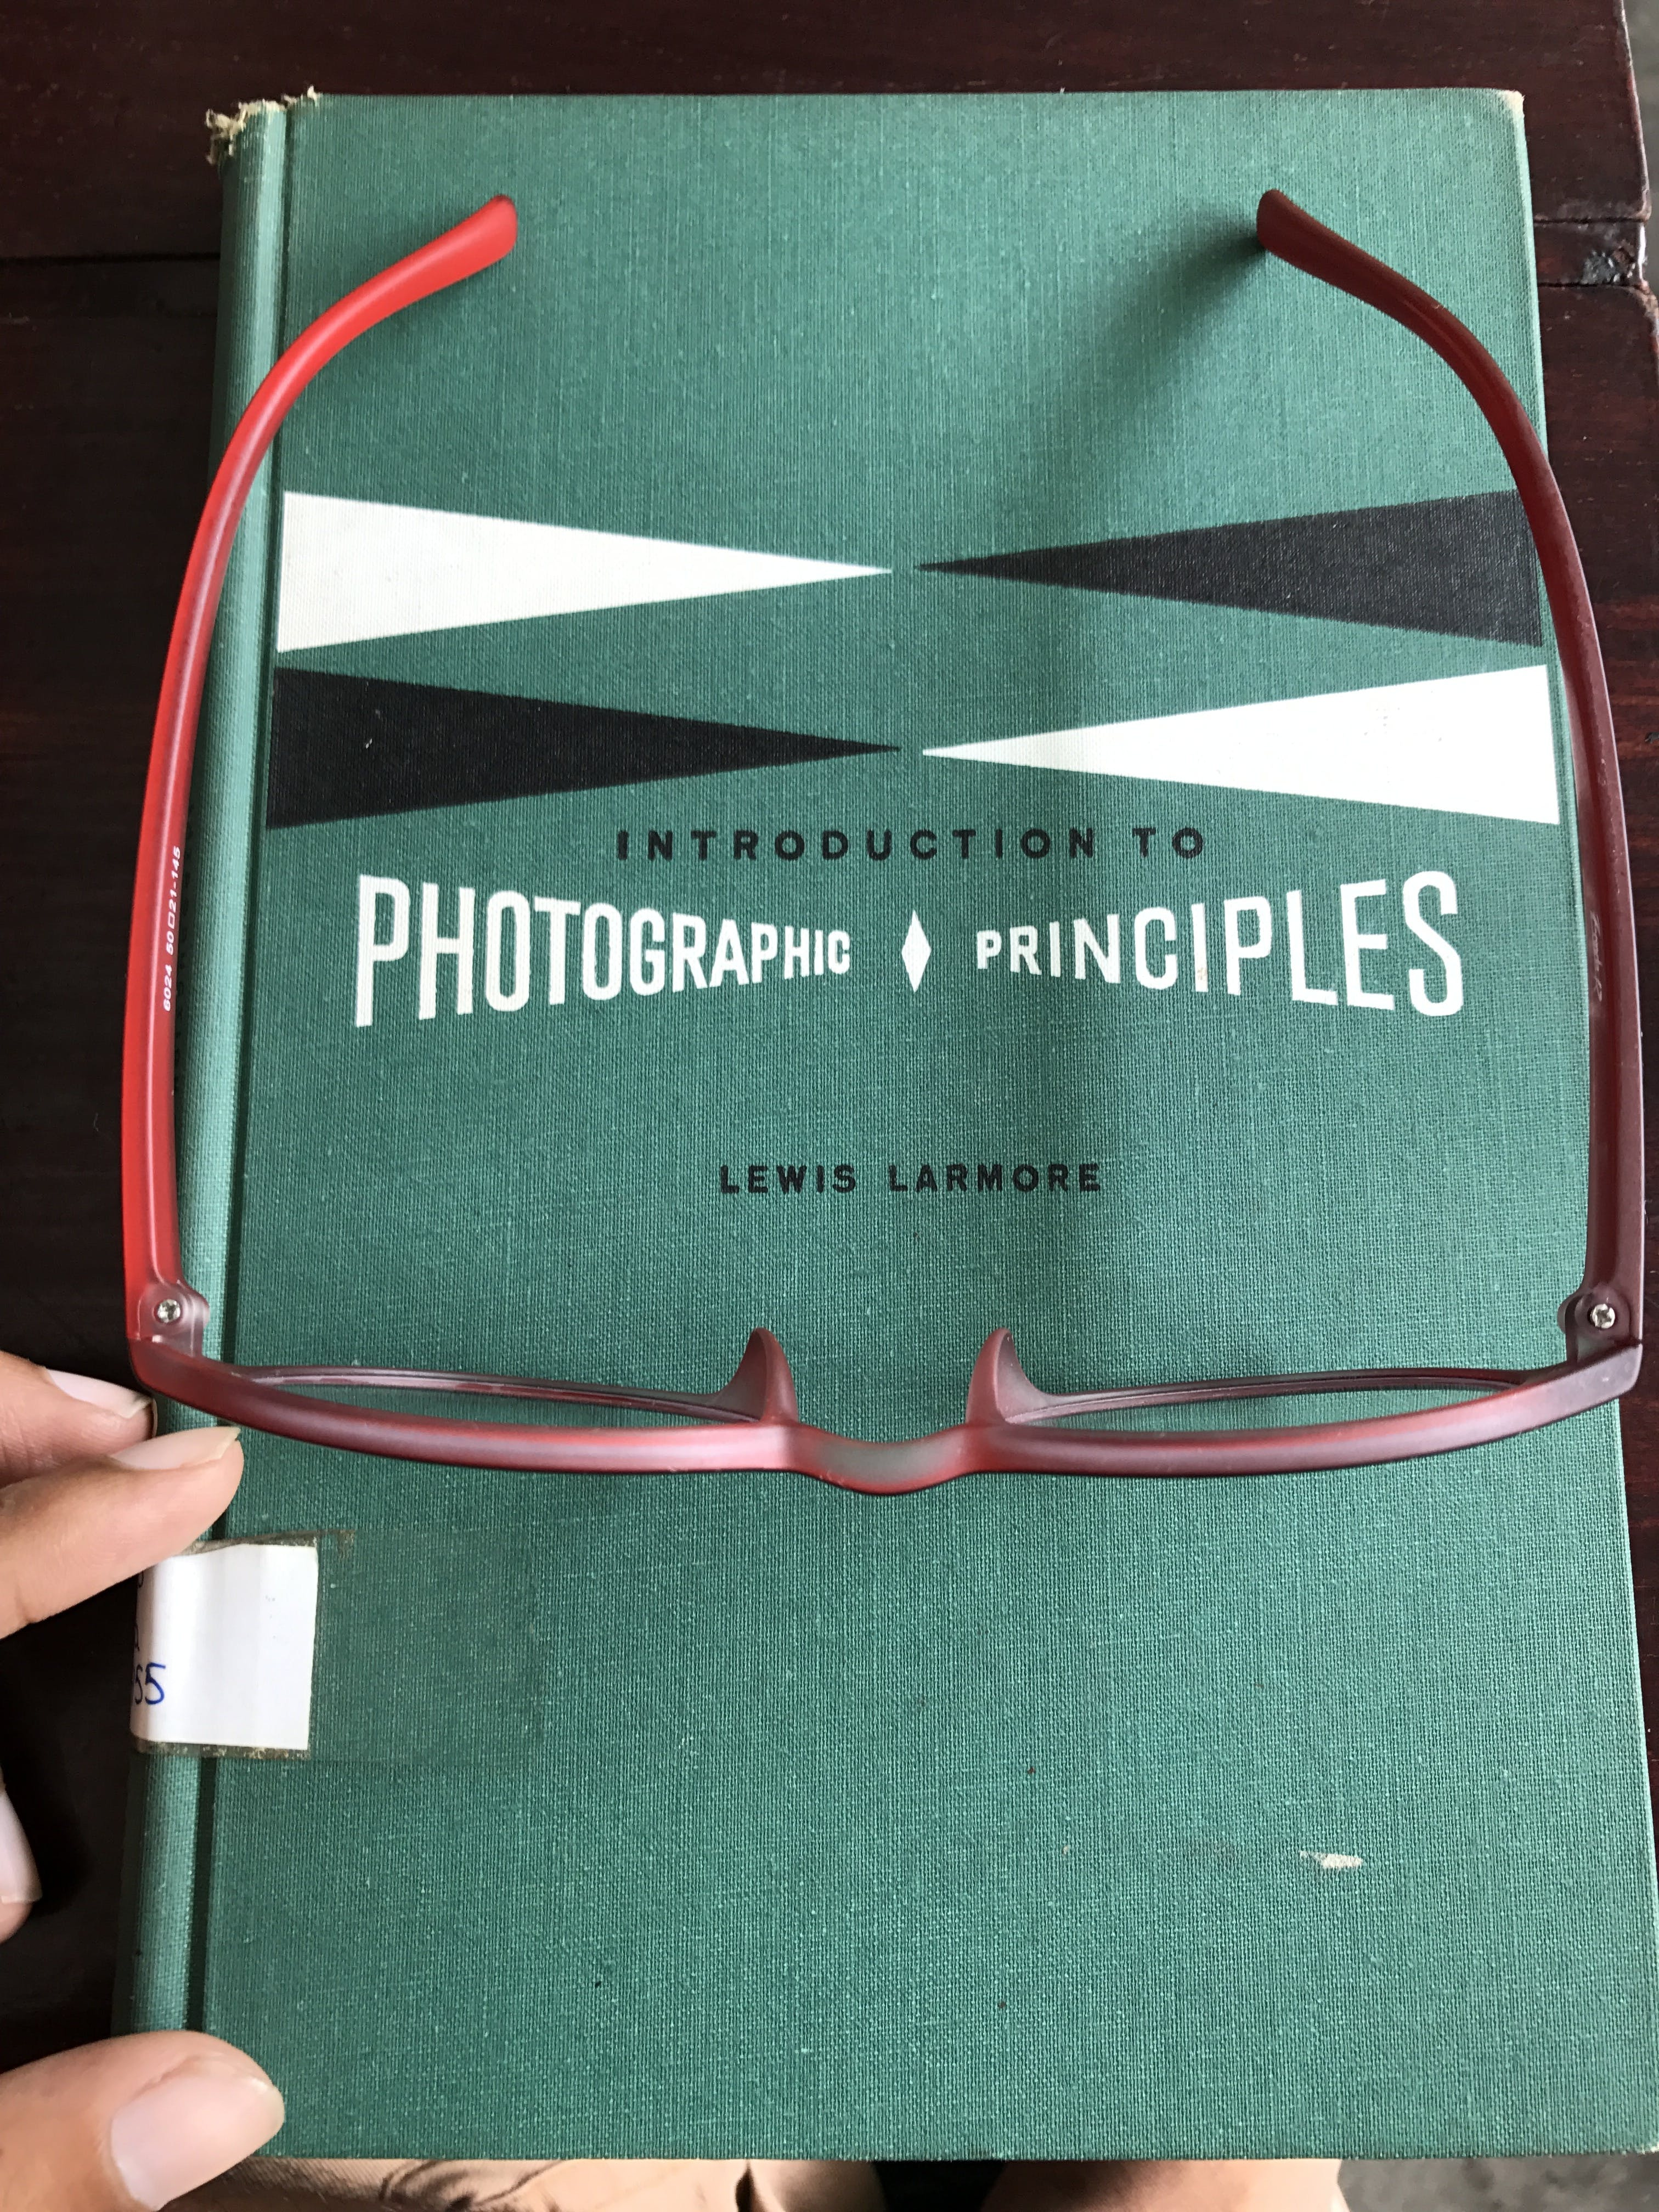 Eyeglasses With Red Frames on Blue Book